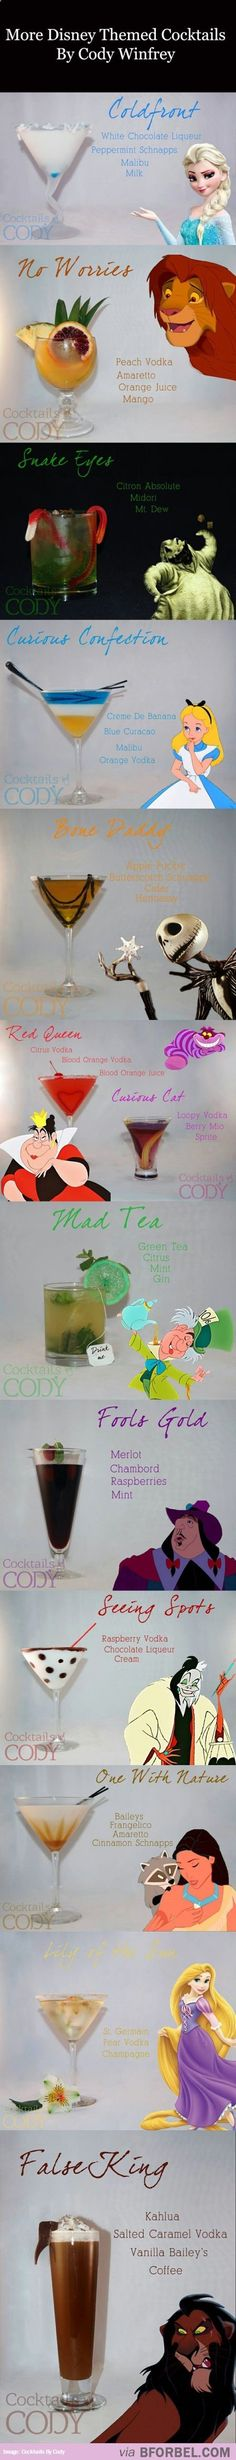 12 More Disney-Themed Cocktails | FOODIEZ-eatzFOODIEZ-eatz